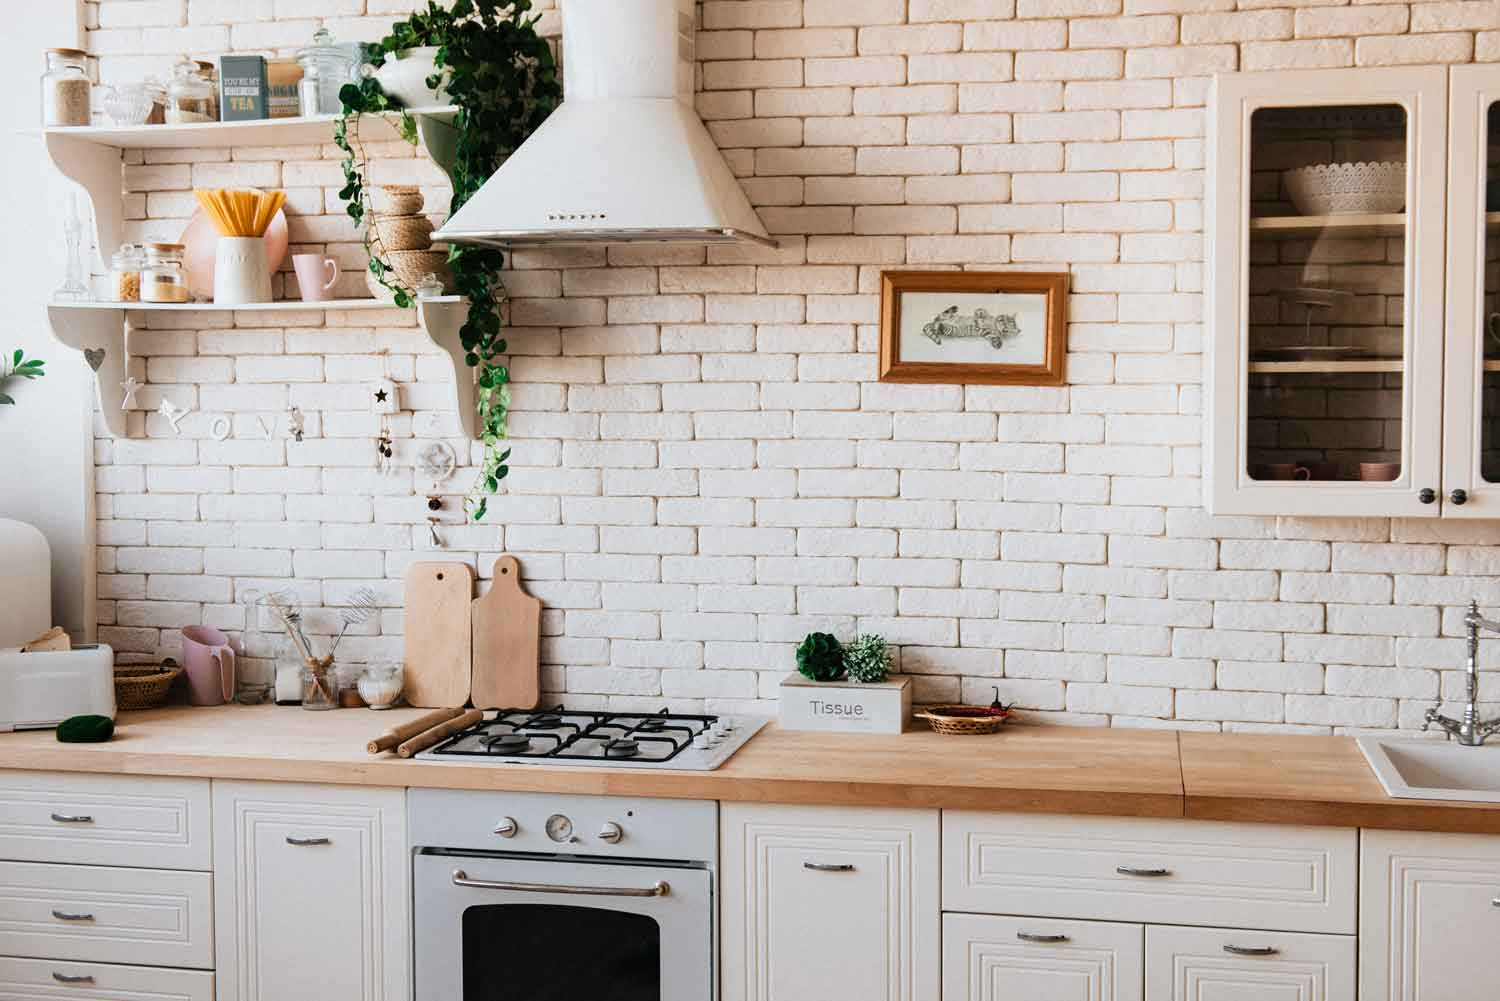 Stylish kitchen with extractor fan